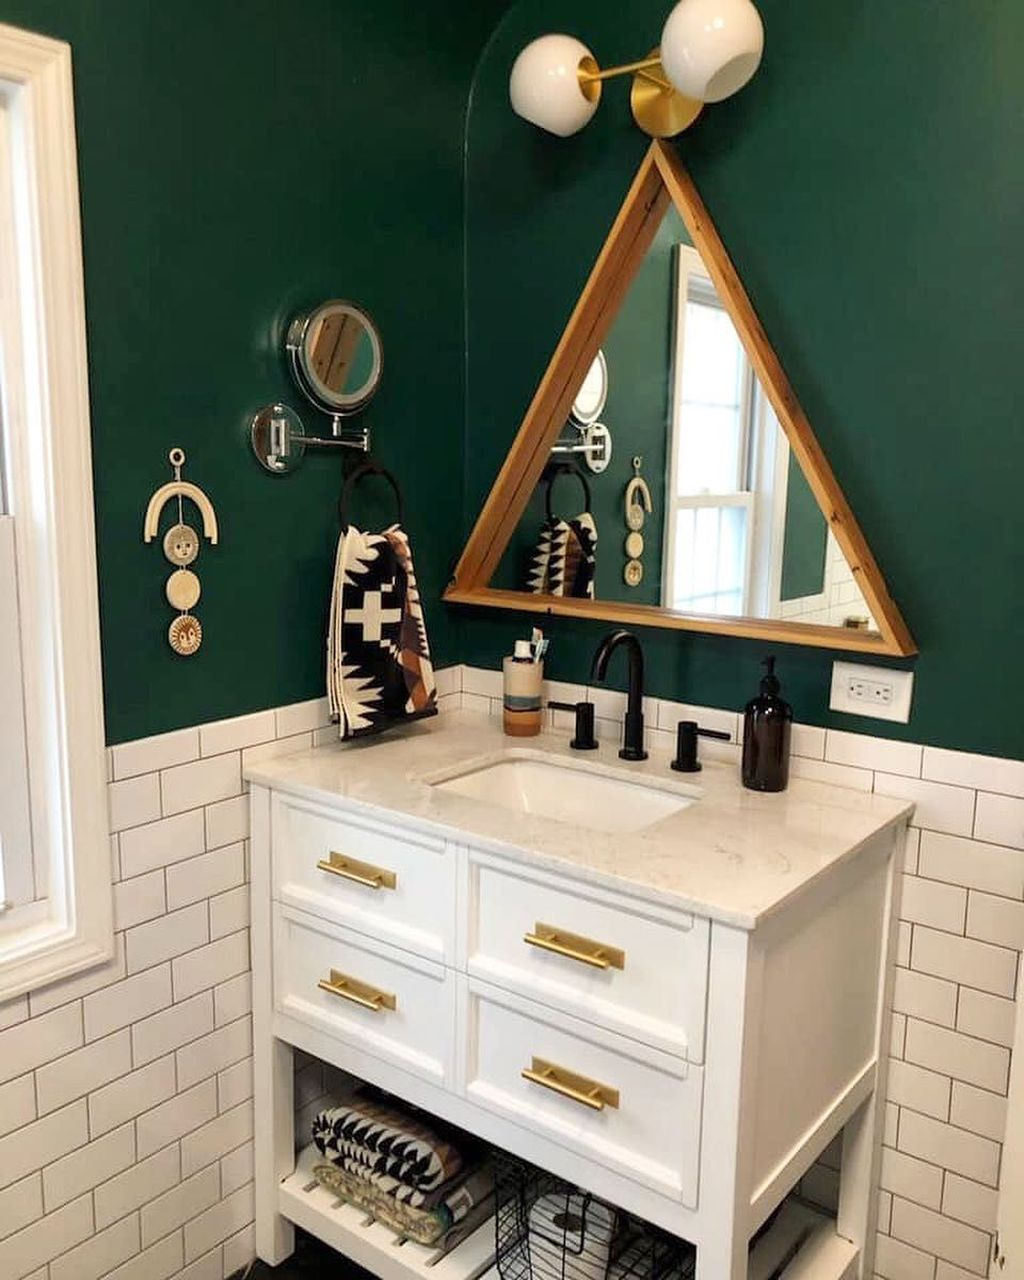 Inspiring Unique Bathroom Ideas That You Should Try 06